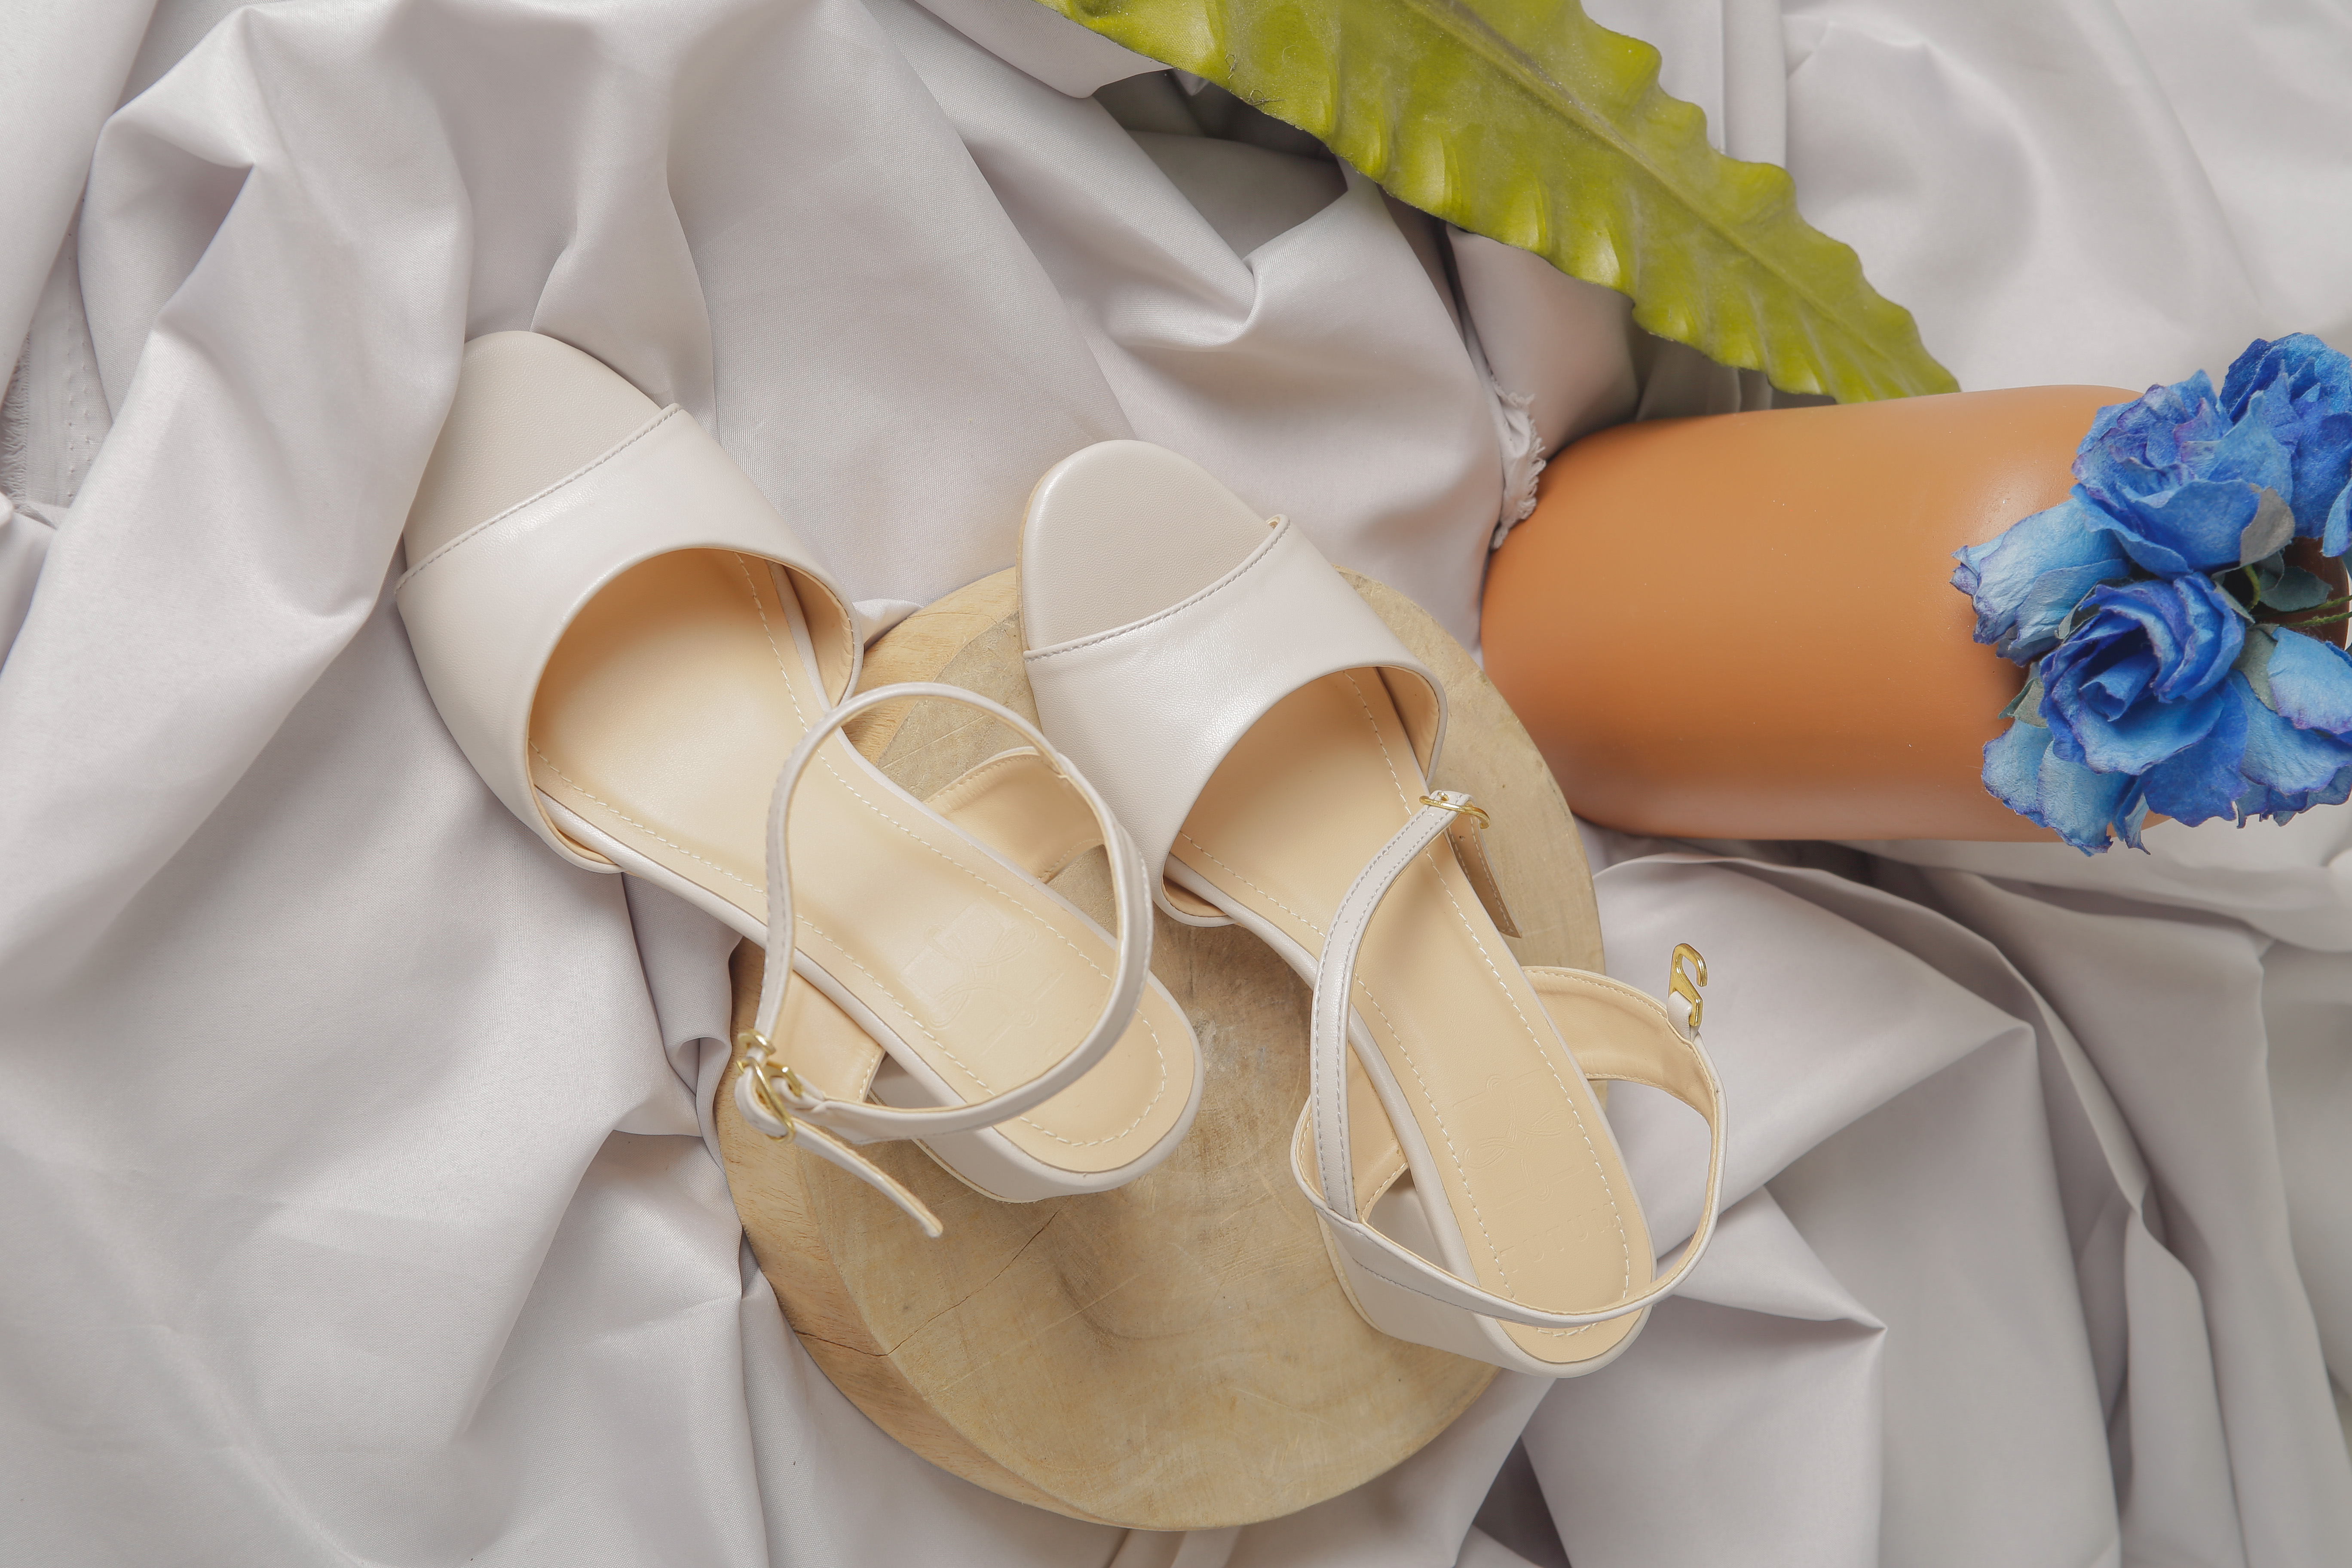 How to Keep Sandals Dry During the Rainy Season in the Philippines